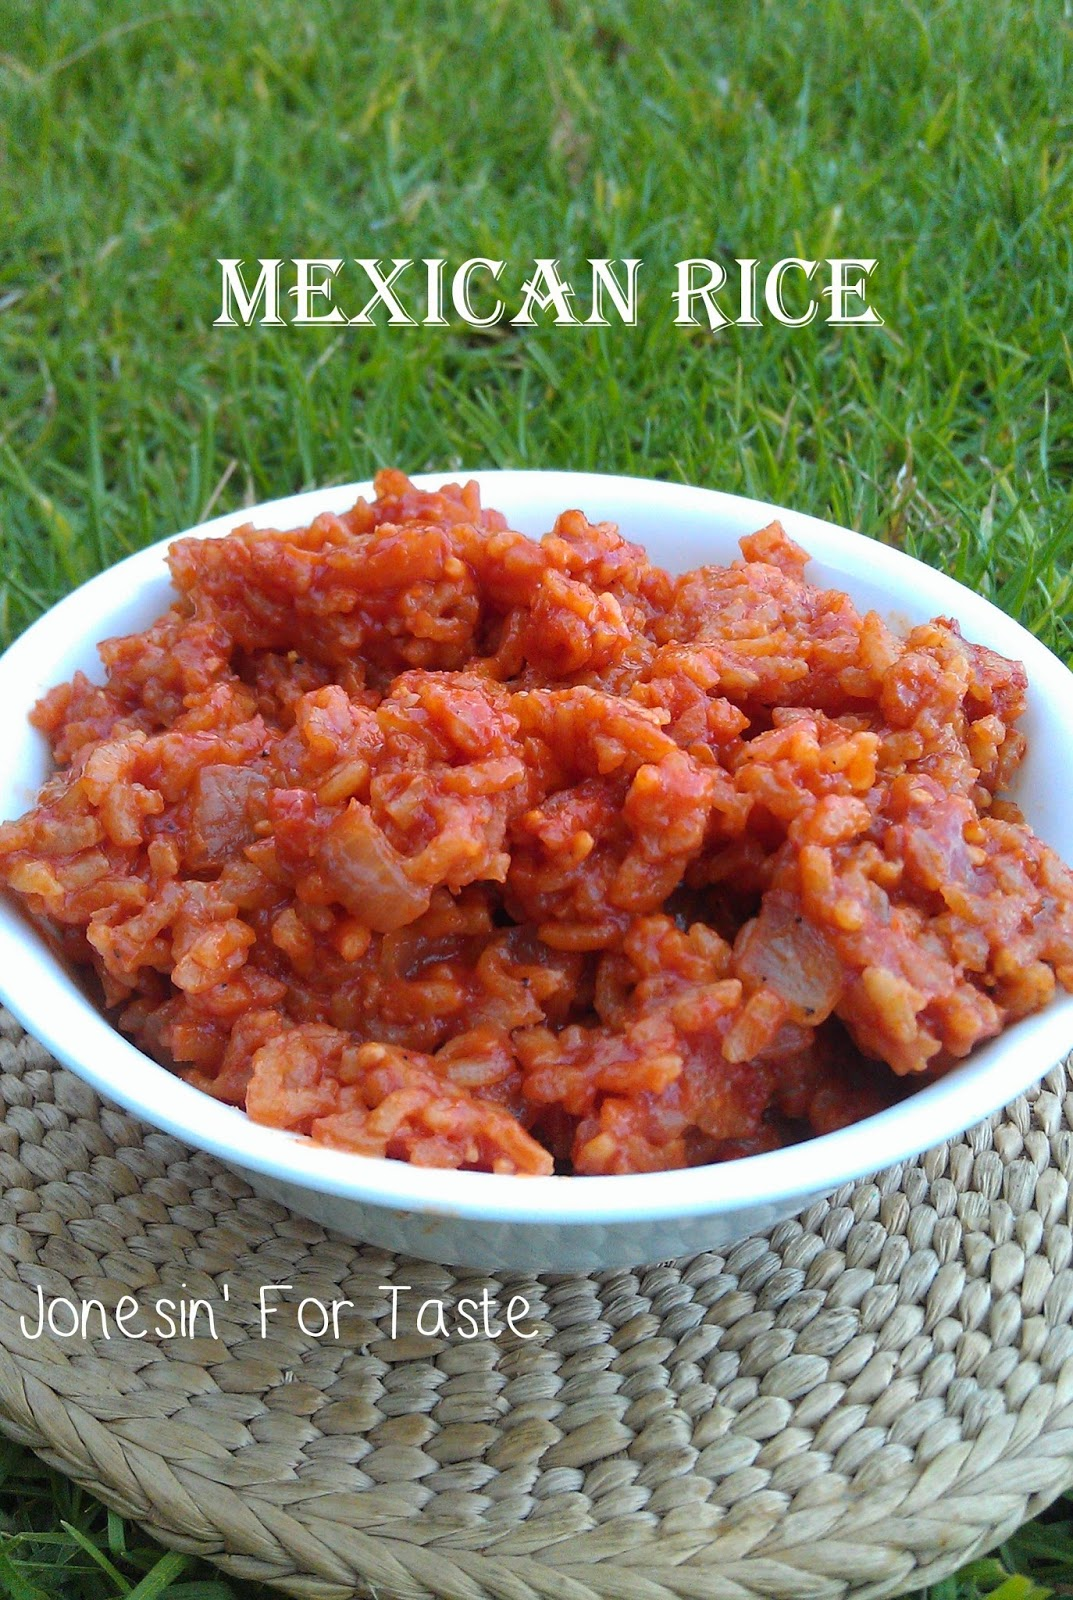 Mexican or Spanish Rice made at home